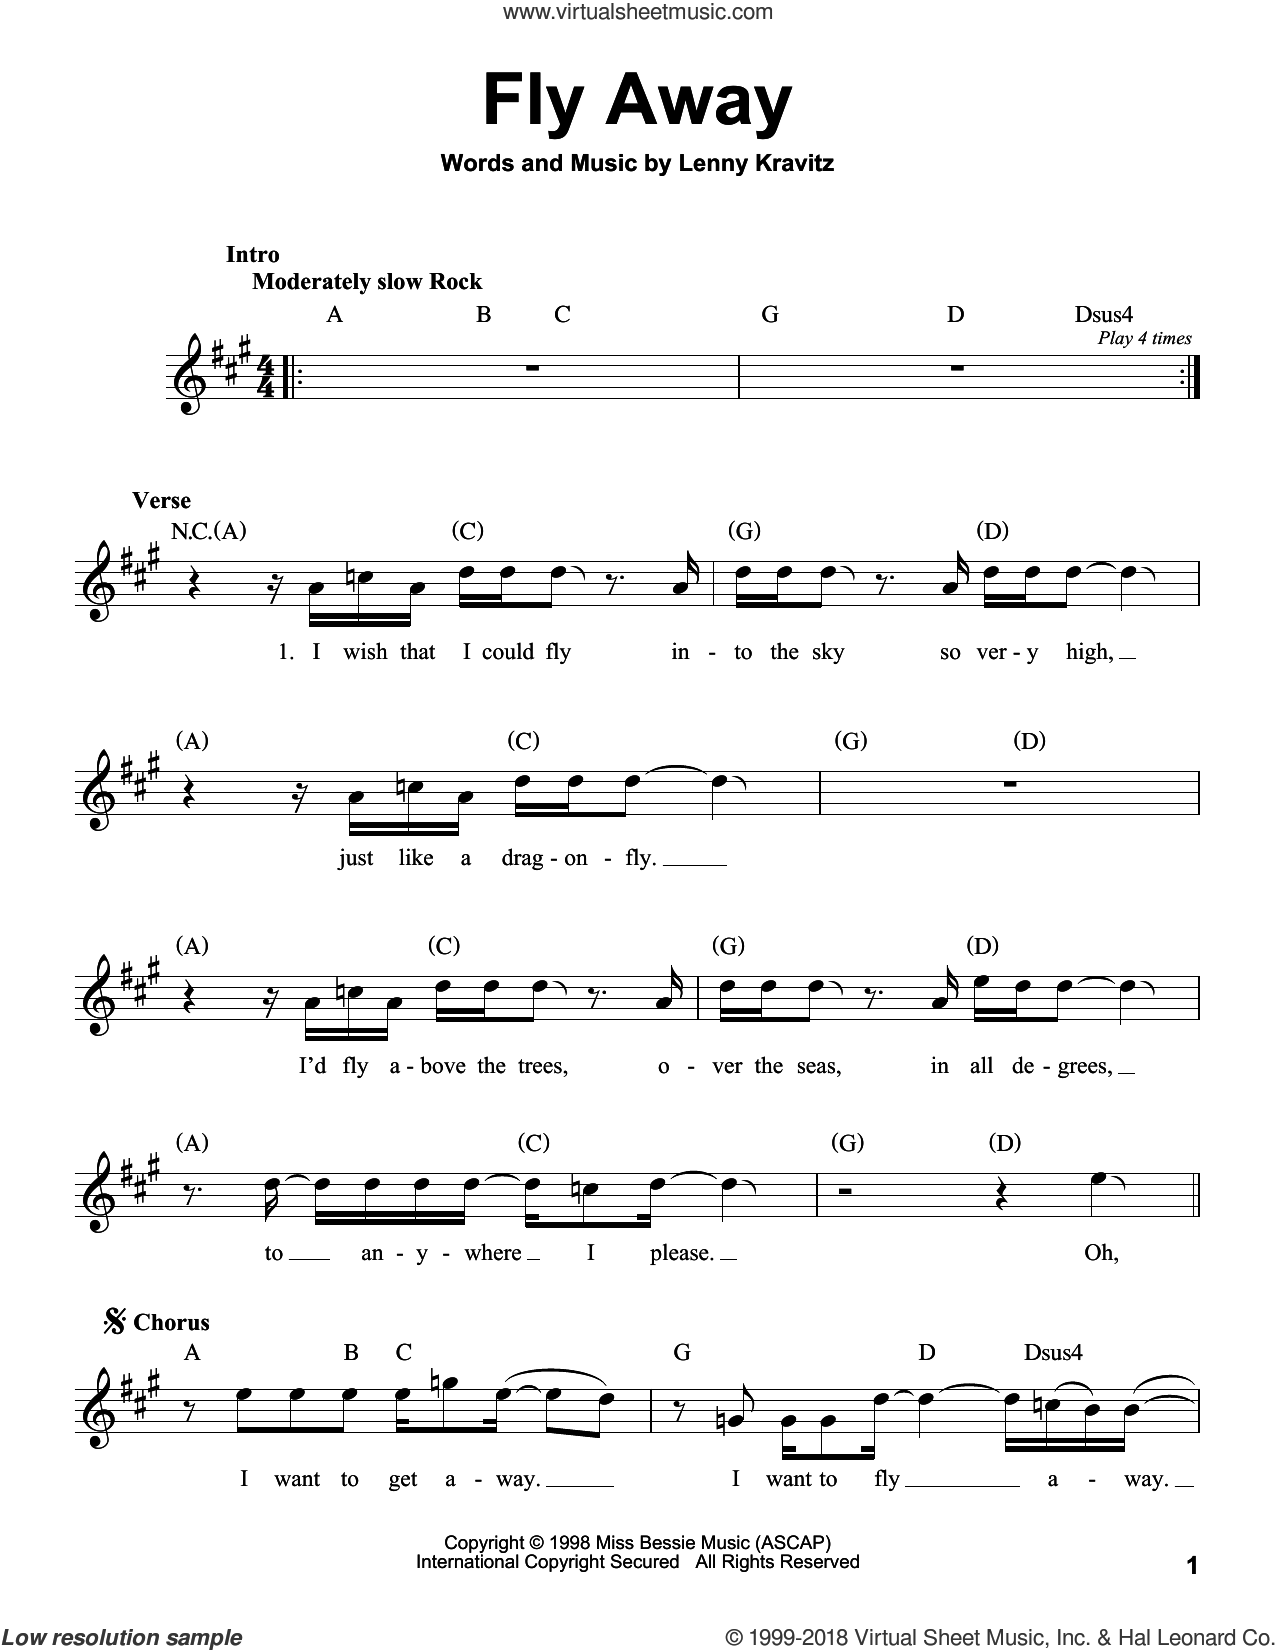 Fly Away sheet music for voice solo by Lenny Kravitz, intermediate skill level